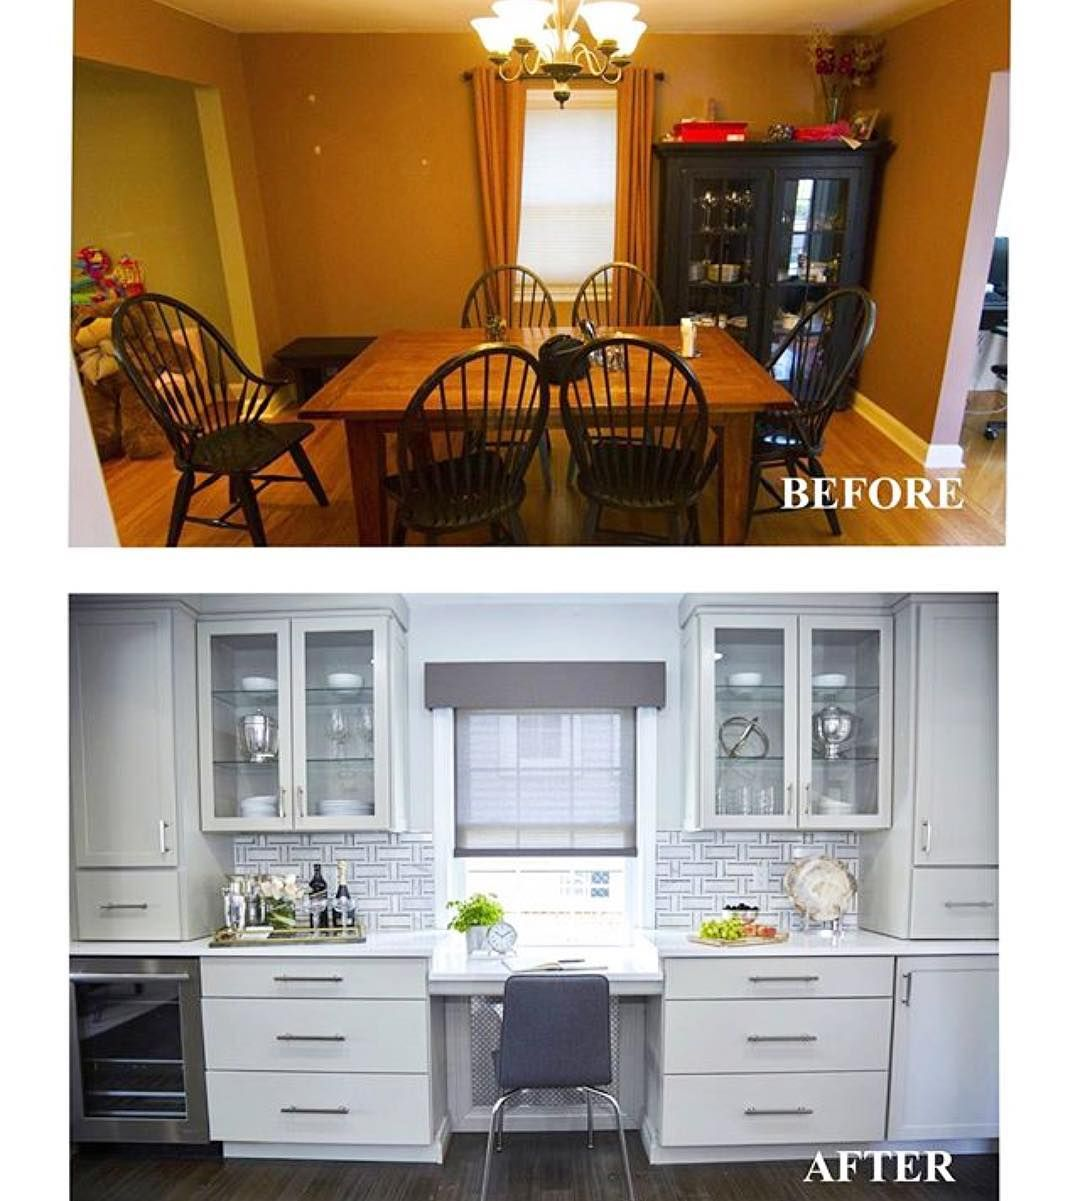 Love this transformation @propertybrothers